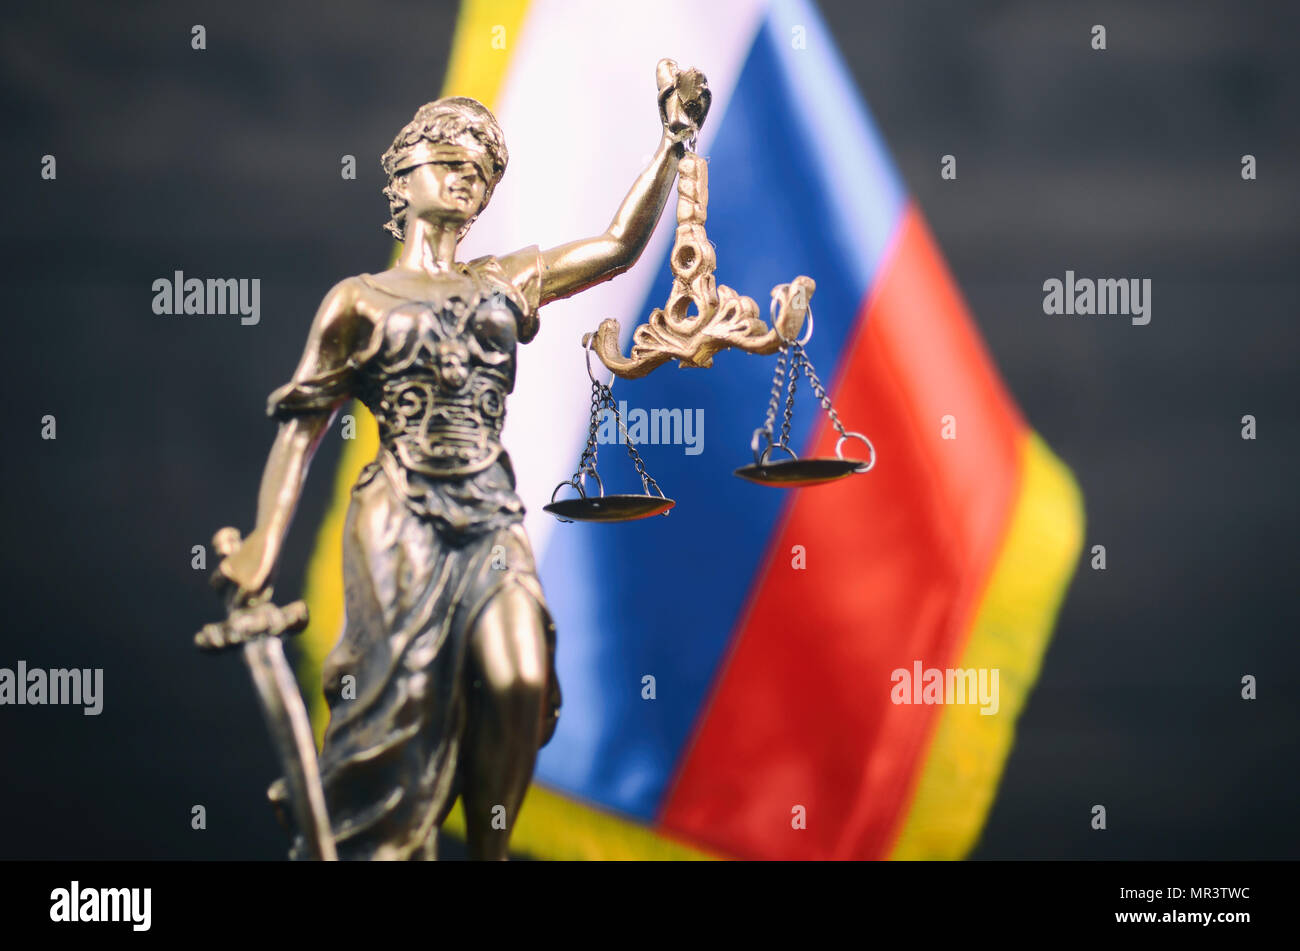 Law and Justice, Legality concept, Scales of Justice, Lady Justice in front of the Russian flag in the background. - Stock Image